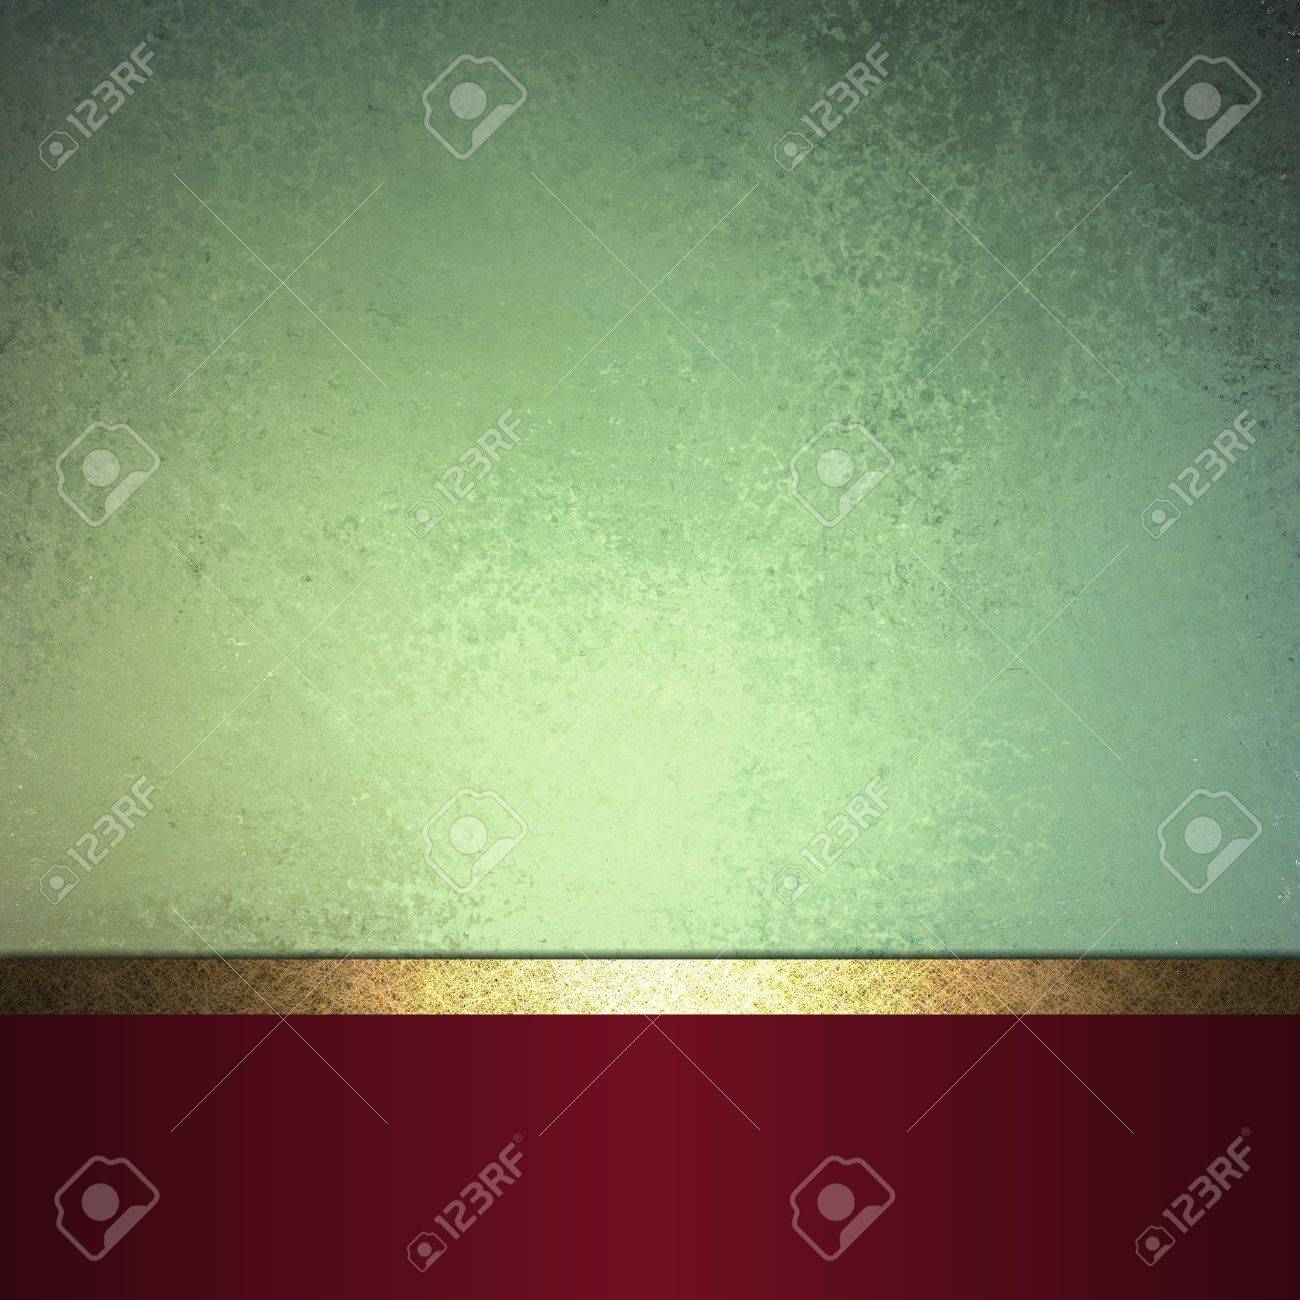 abstract Christmas background or green background design layout of elegant old vintage grunge background textured wall, blank dark burgundy red ribbon wrap on bottom frame, brochure ad or web template Stock Photo - 17310513